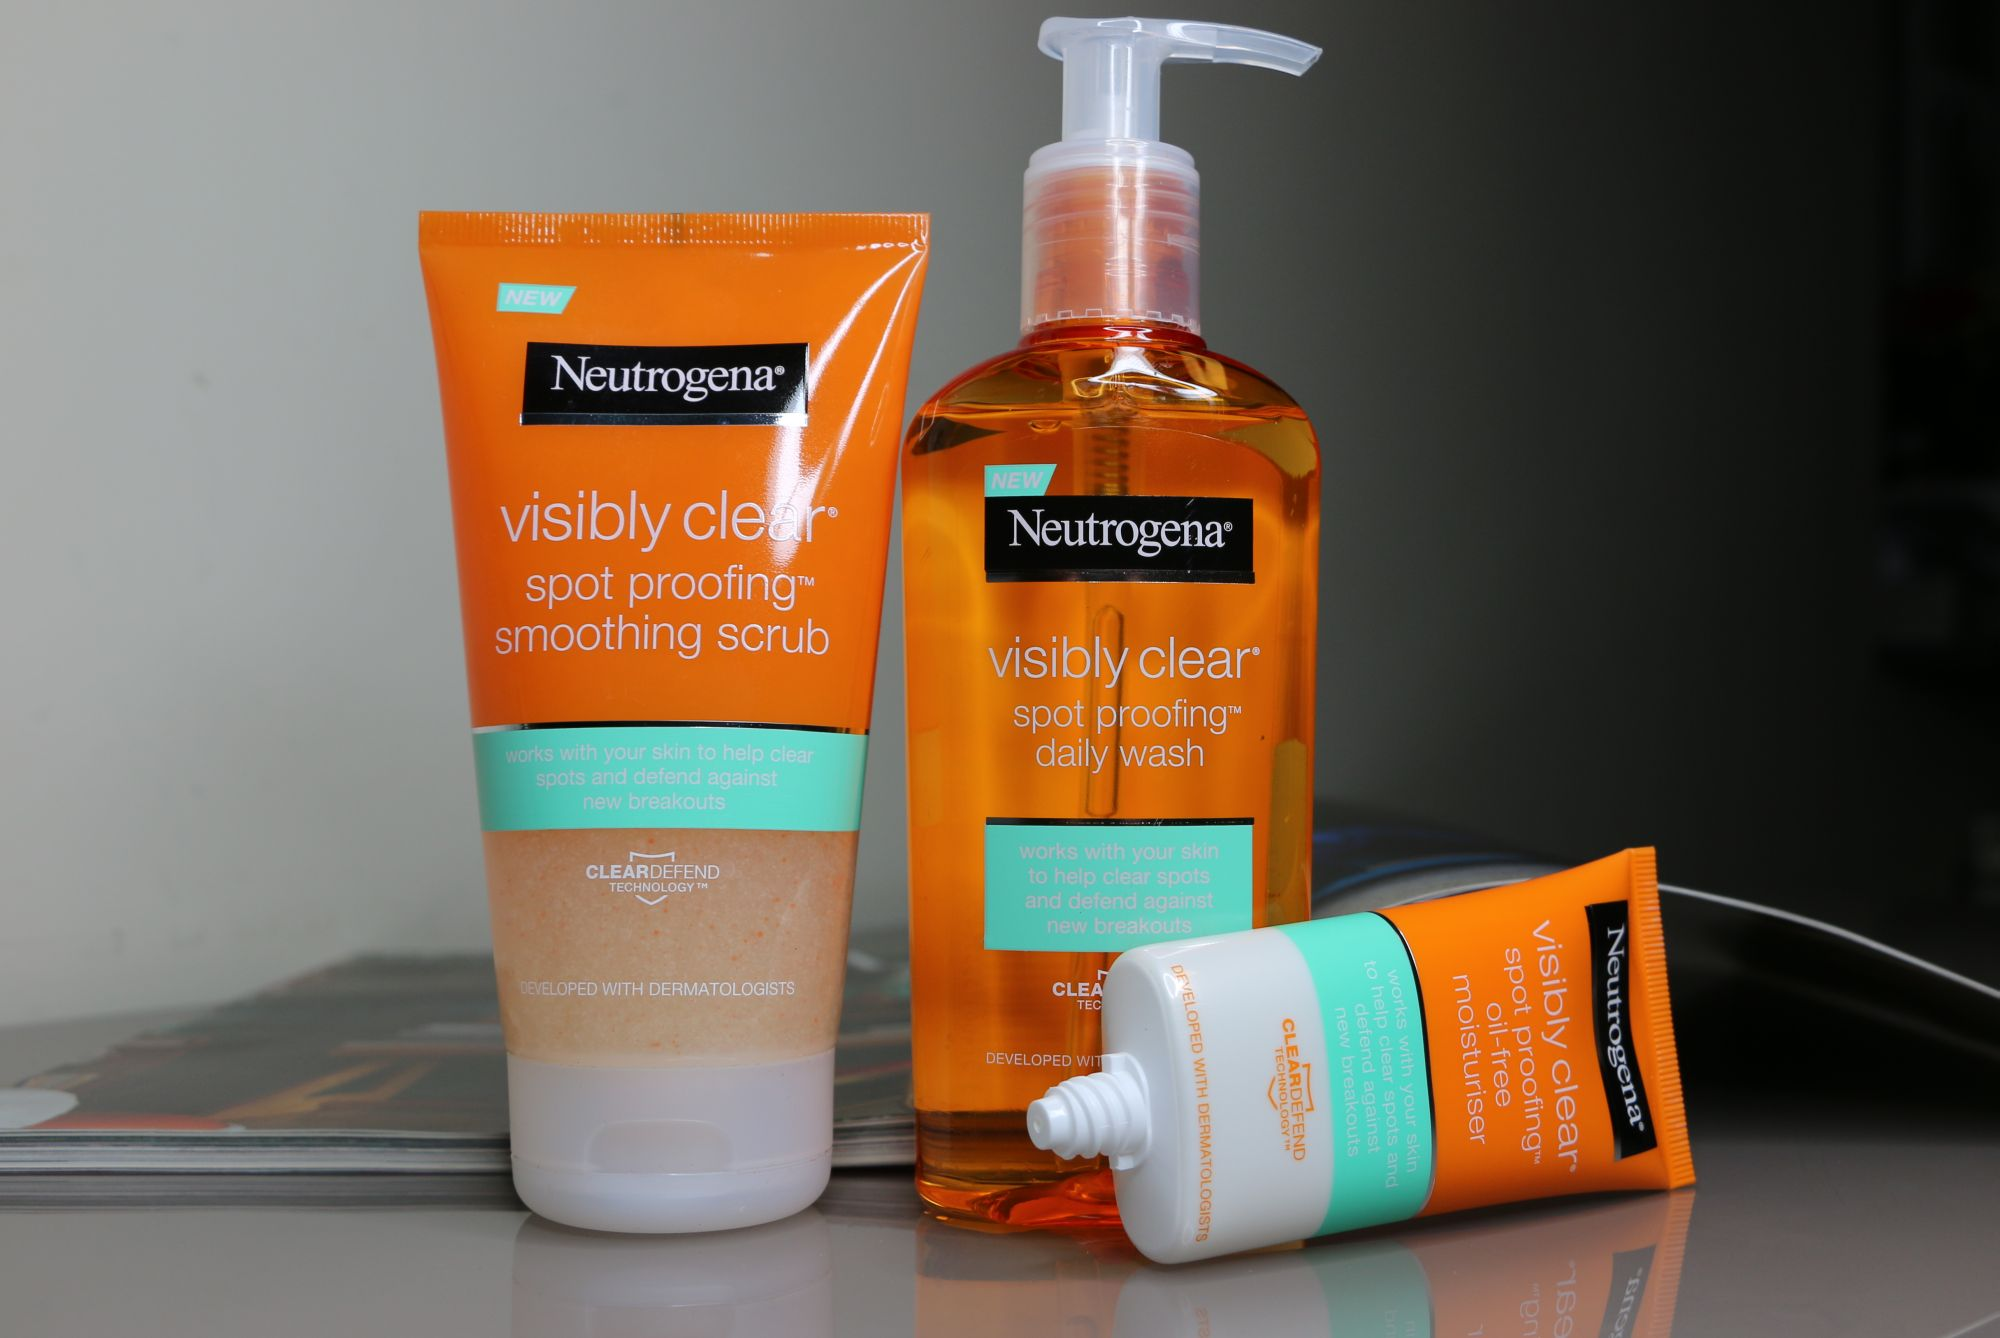 TOP 5 SKINCARE PRODUCTS - Neutrogena Visibly Clear Set